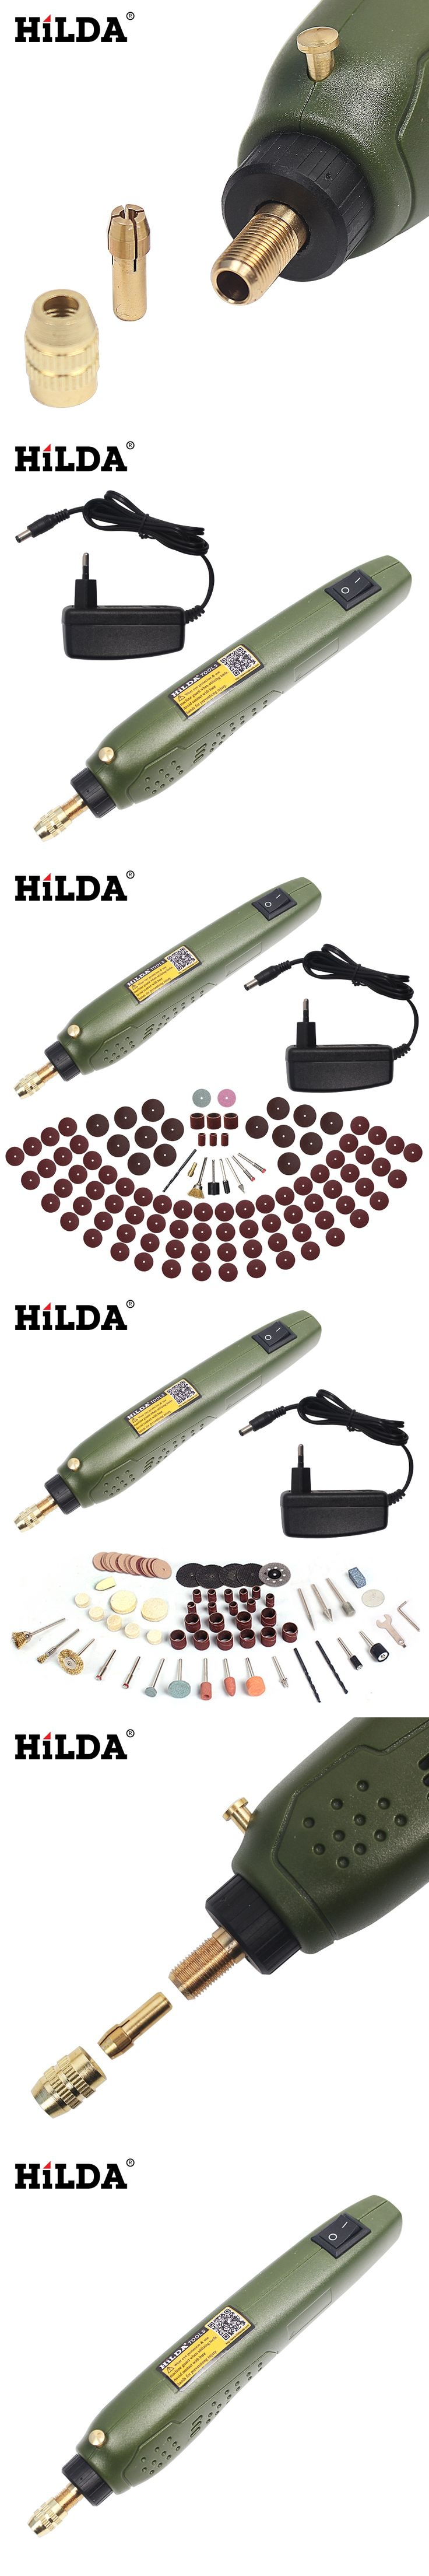 HILDA FOR Dremel Mini Electric Drill + Grinding Accessories Set Multifunction Engraving Machine Electric Tool kits Power Tools